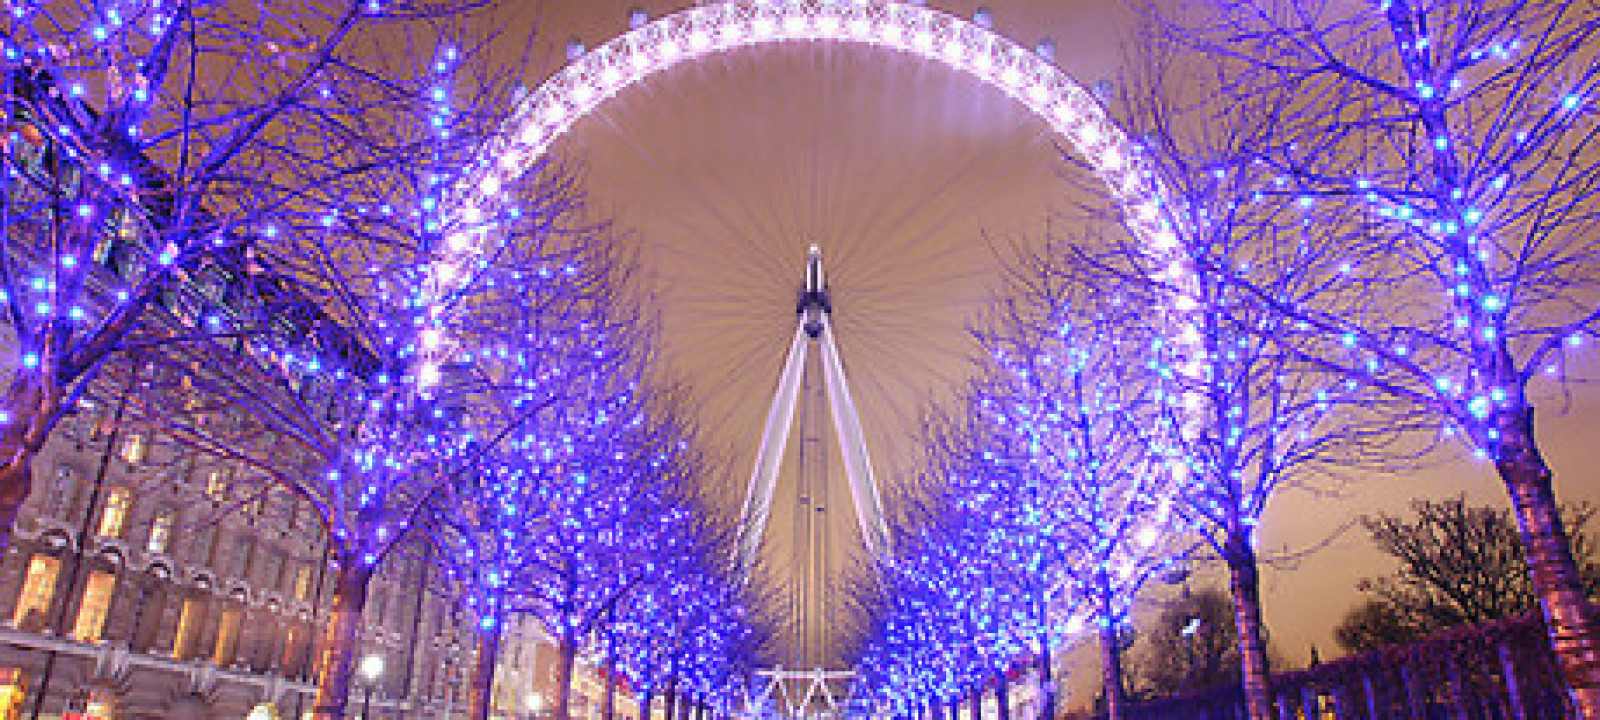 London Eye Free Wallpaper